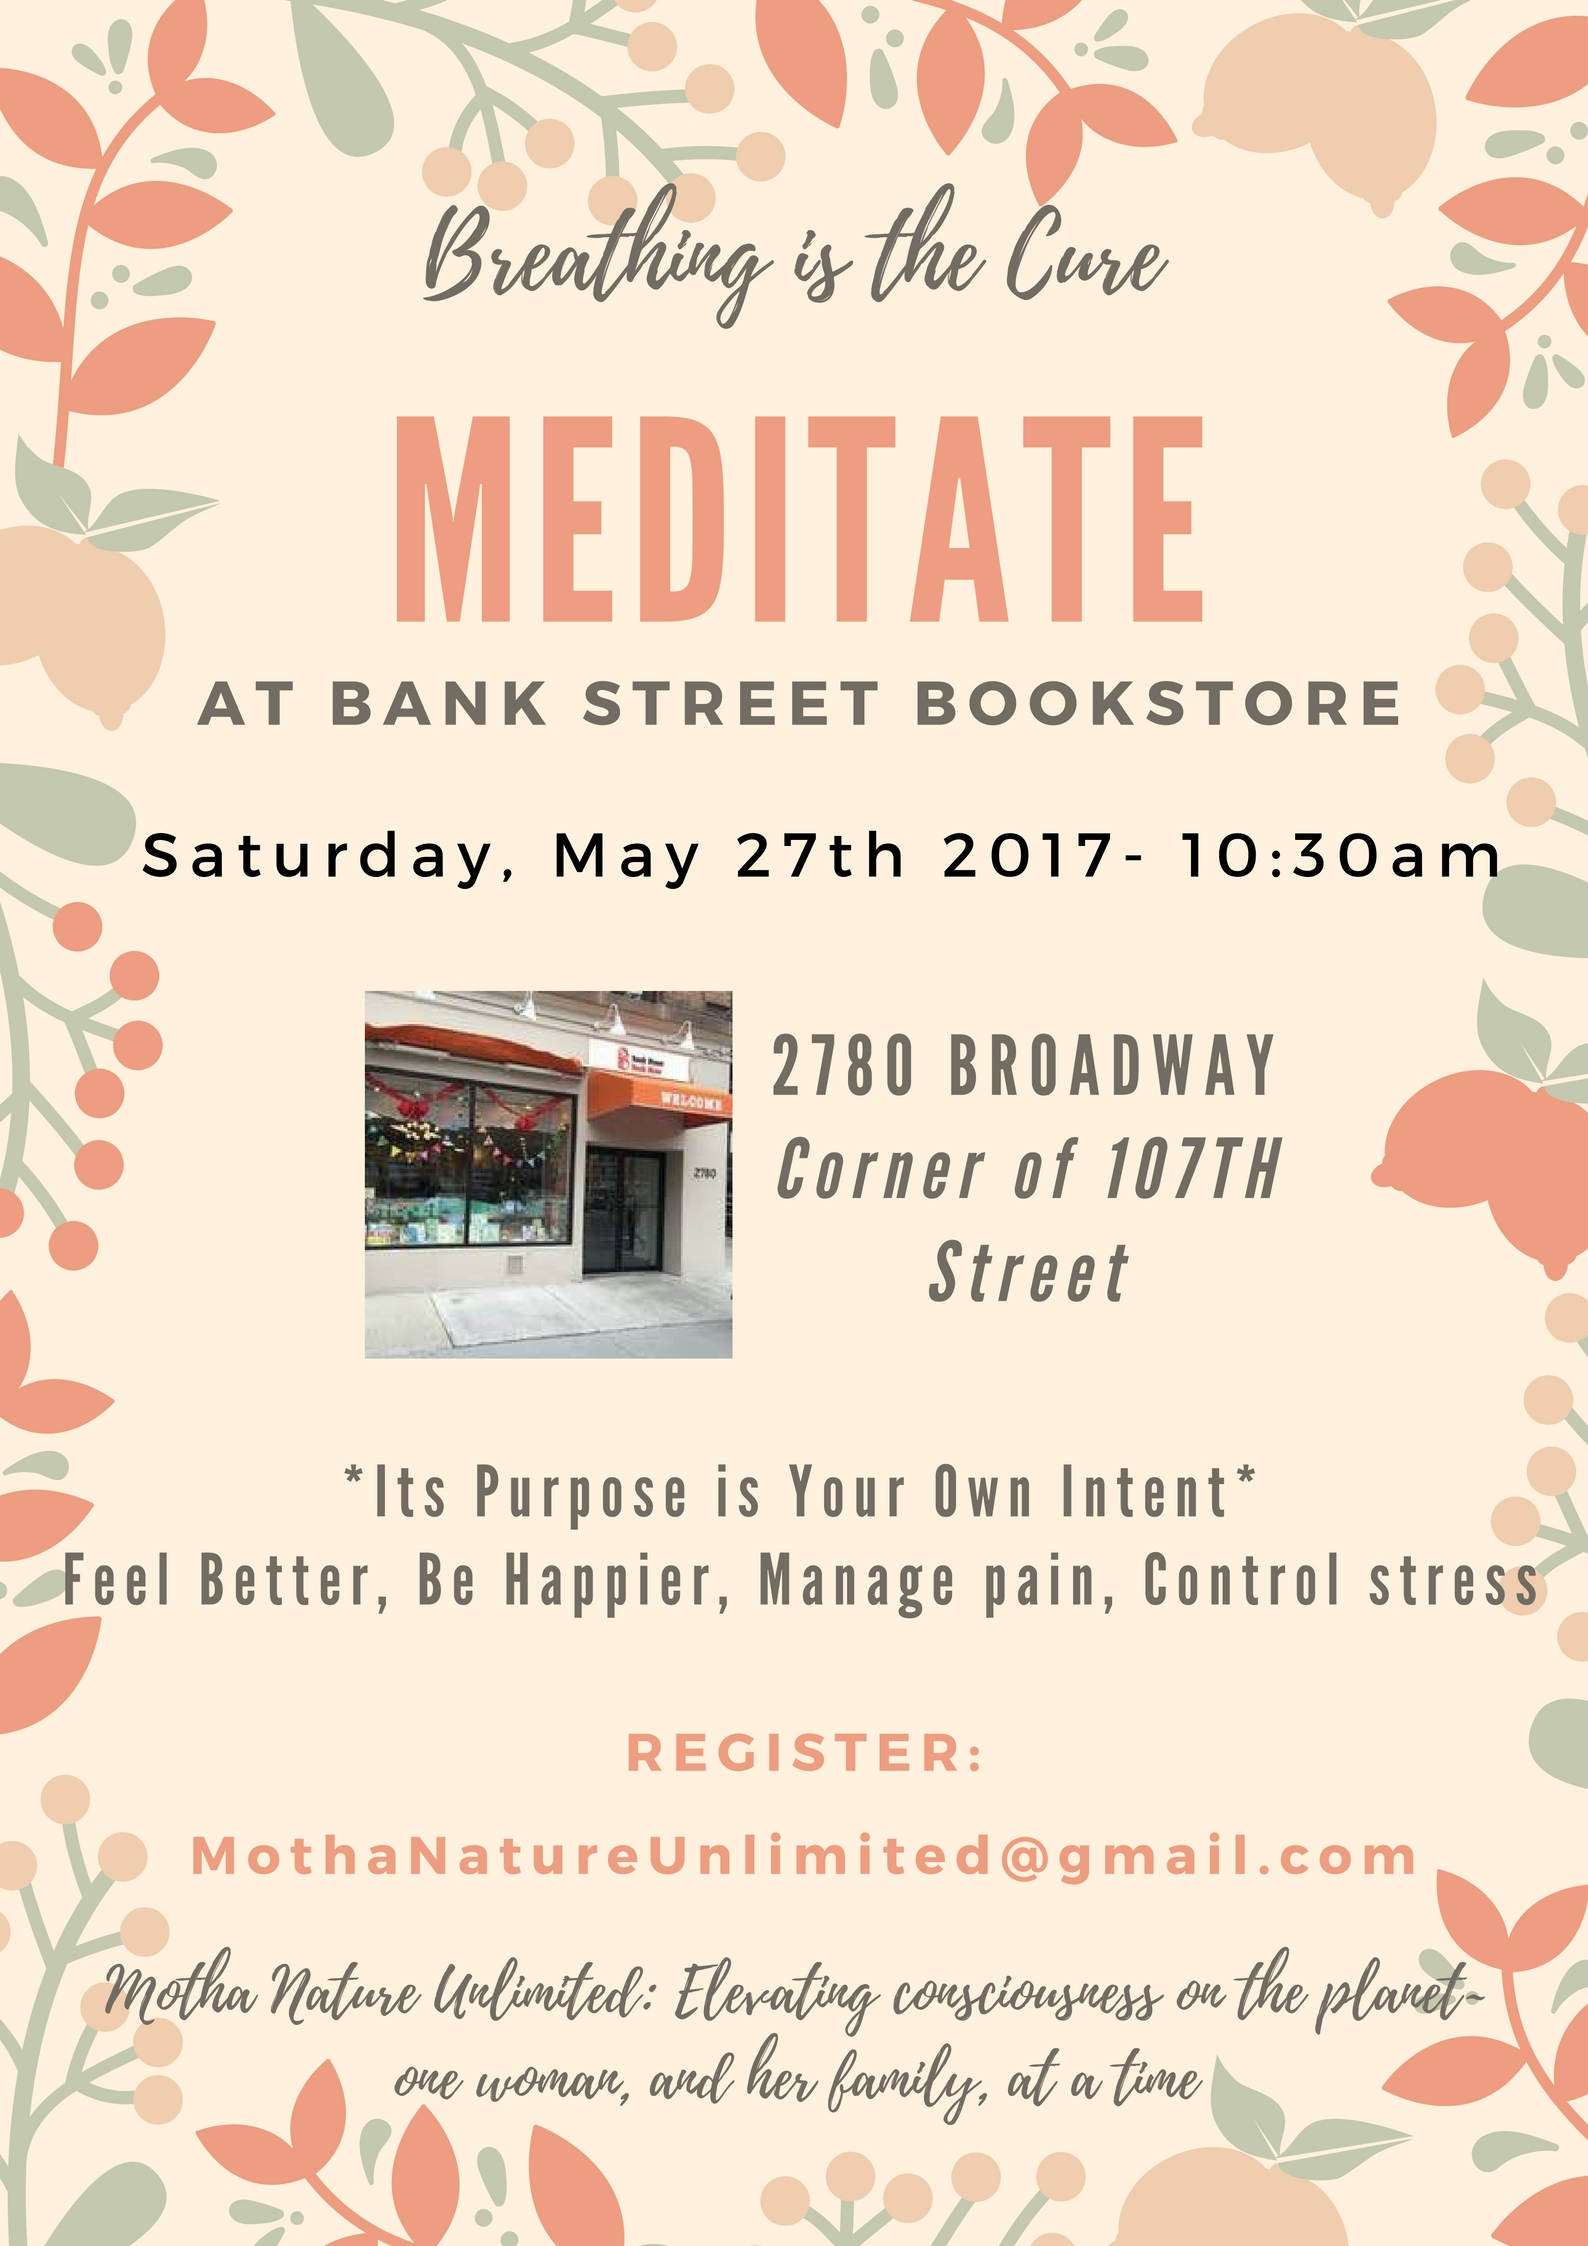 Meditation at Bank Street Bookstore